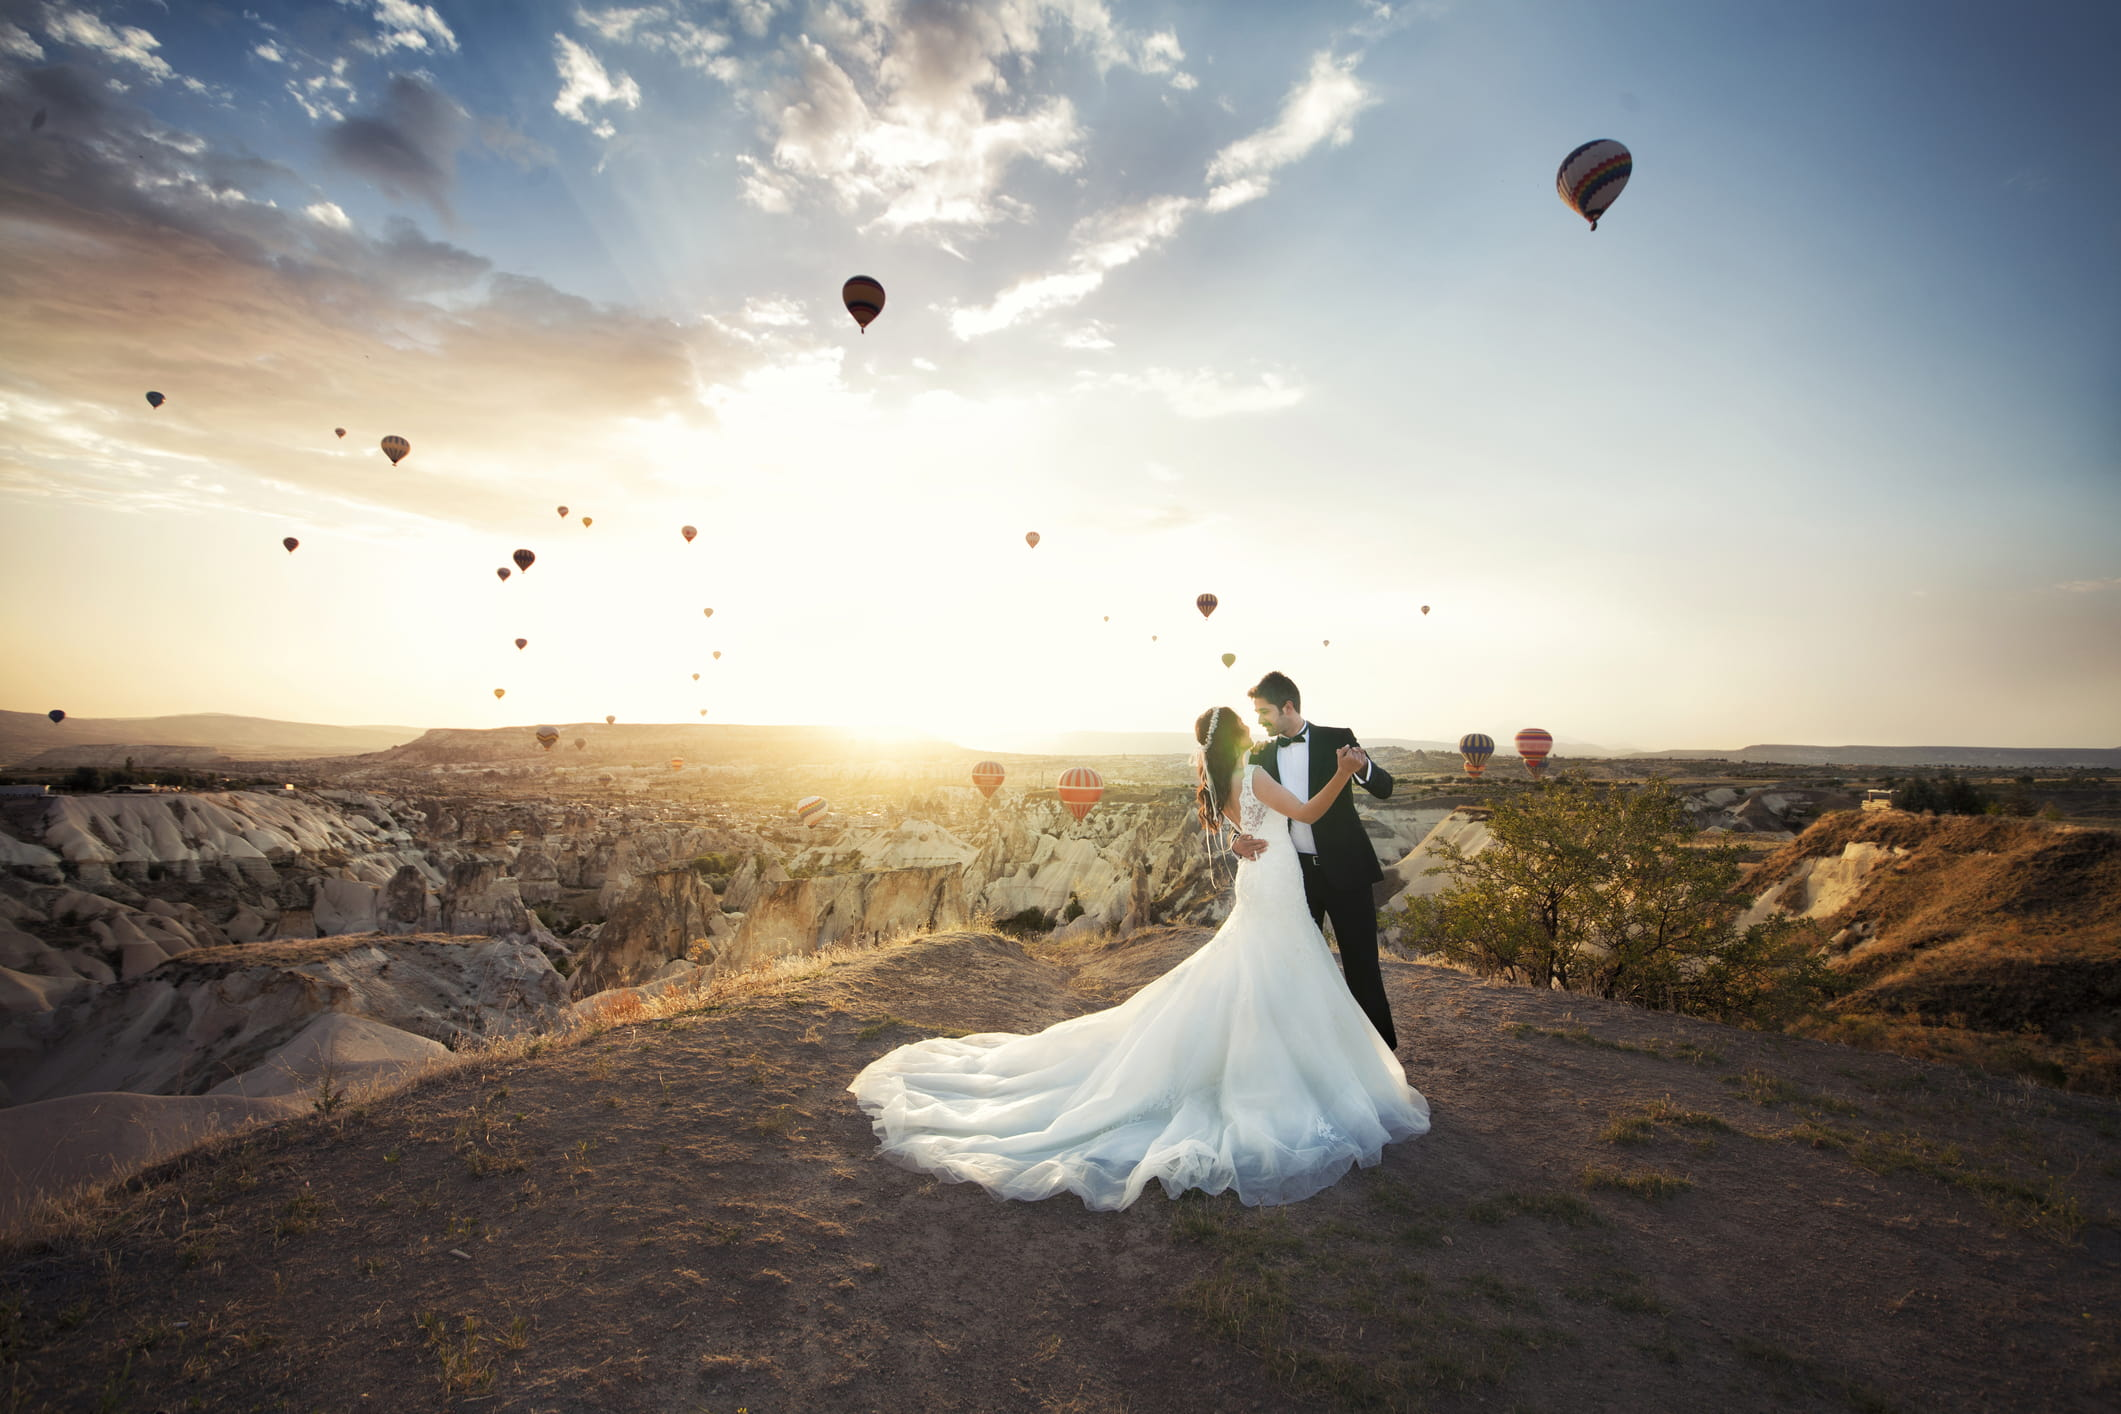 wedding photography trends 2018 image